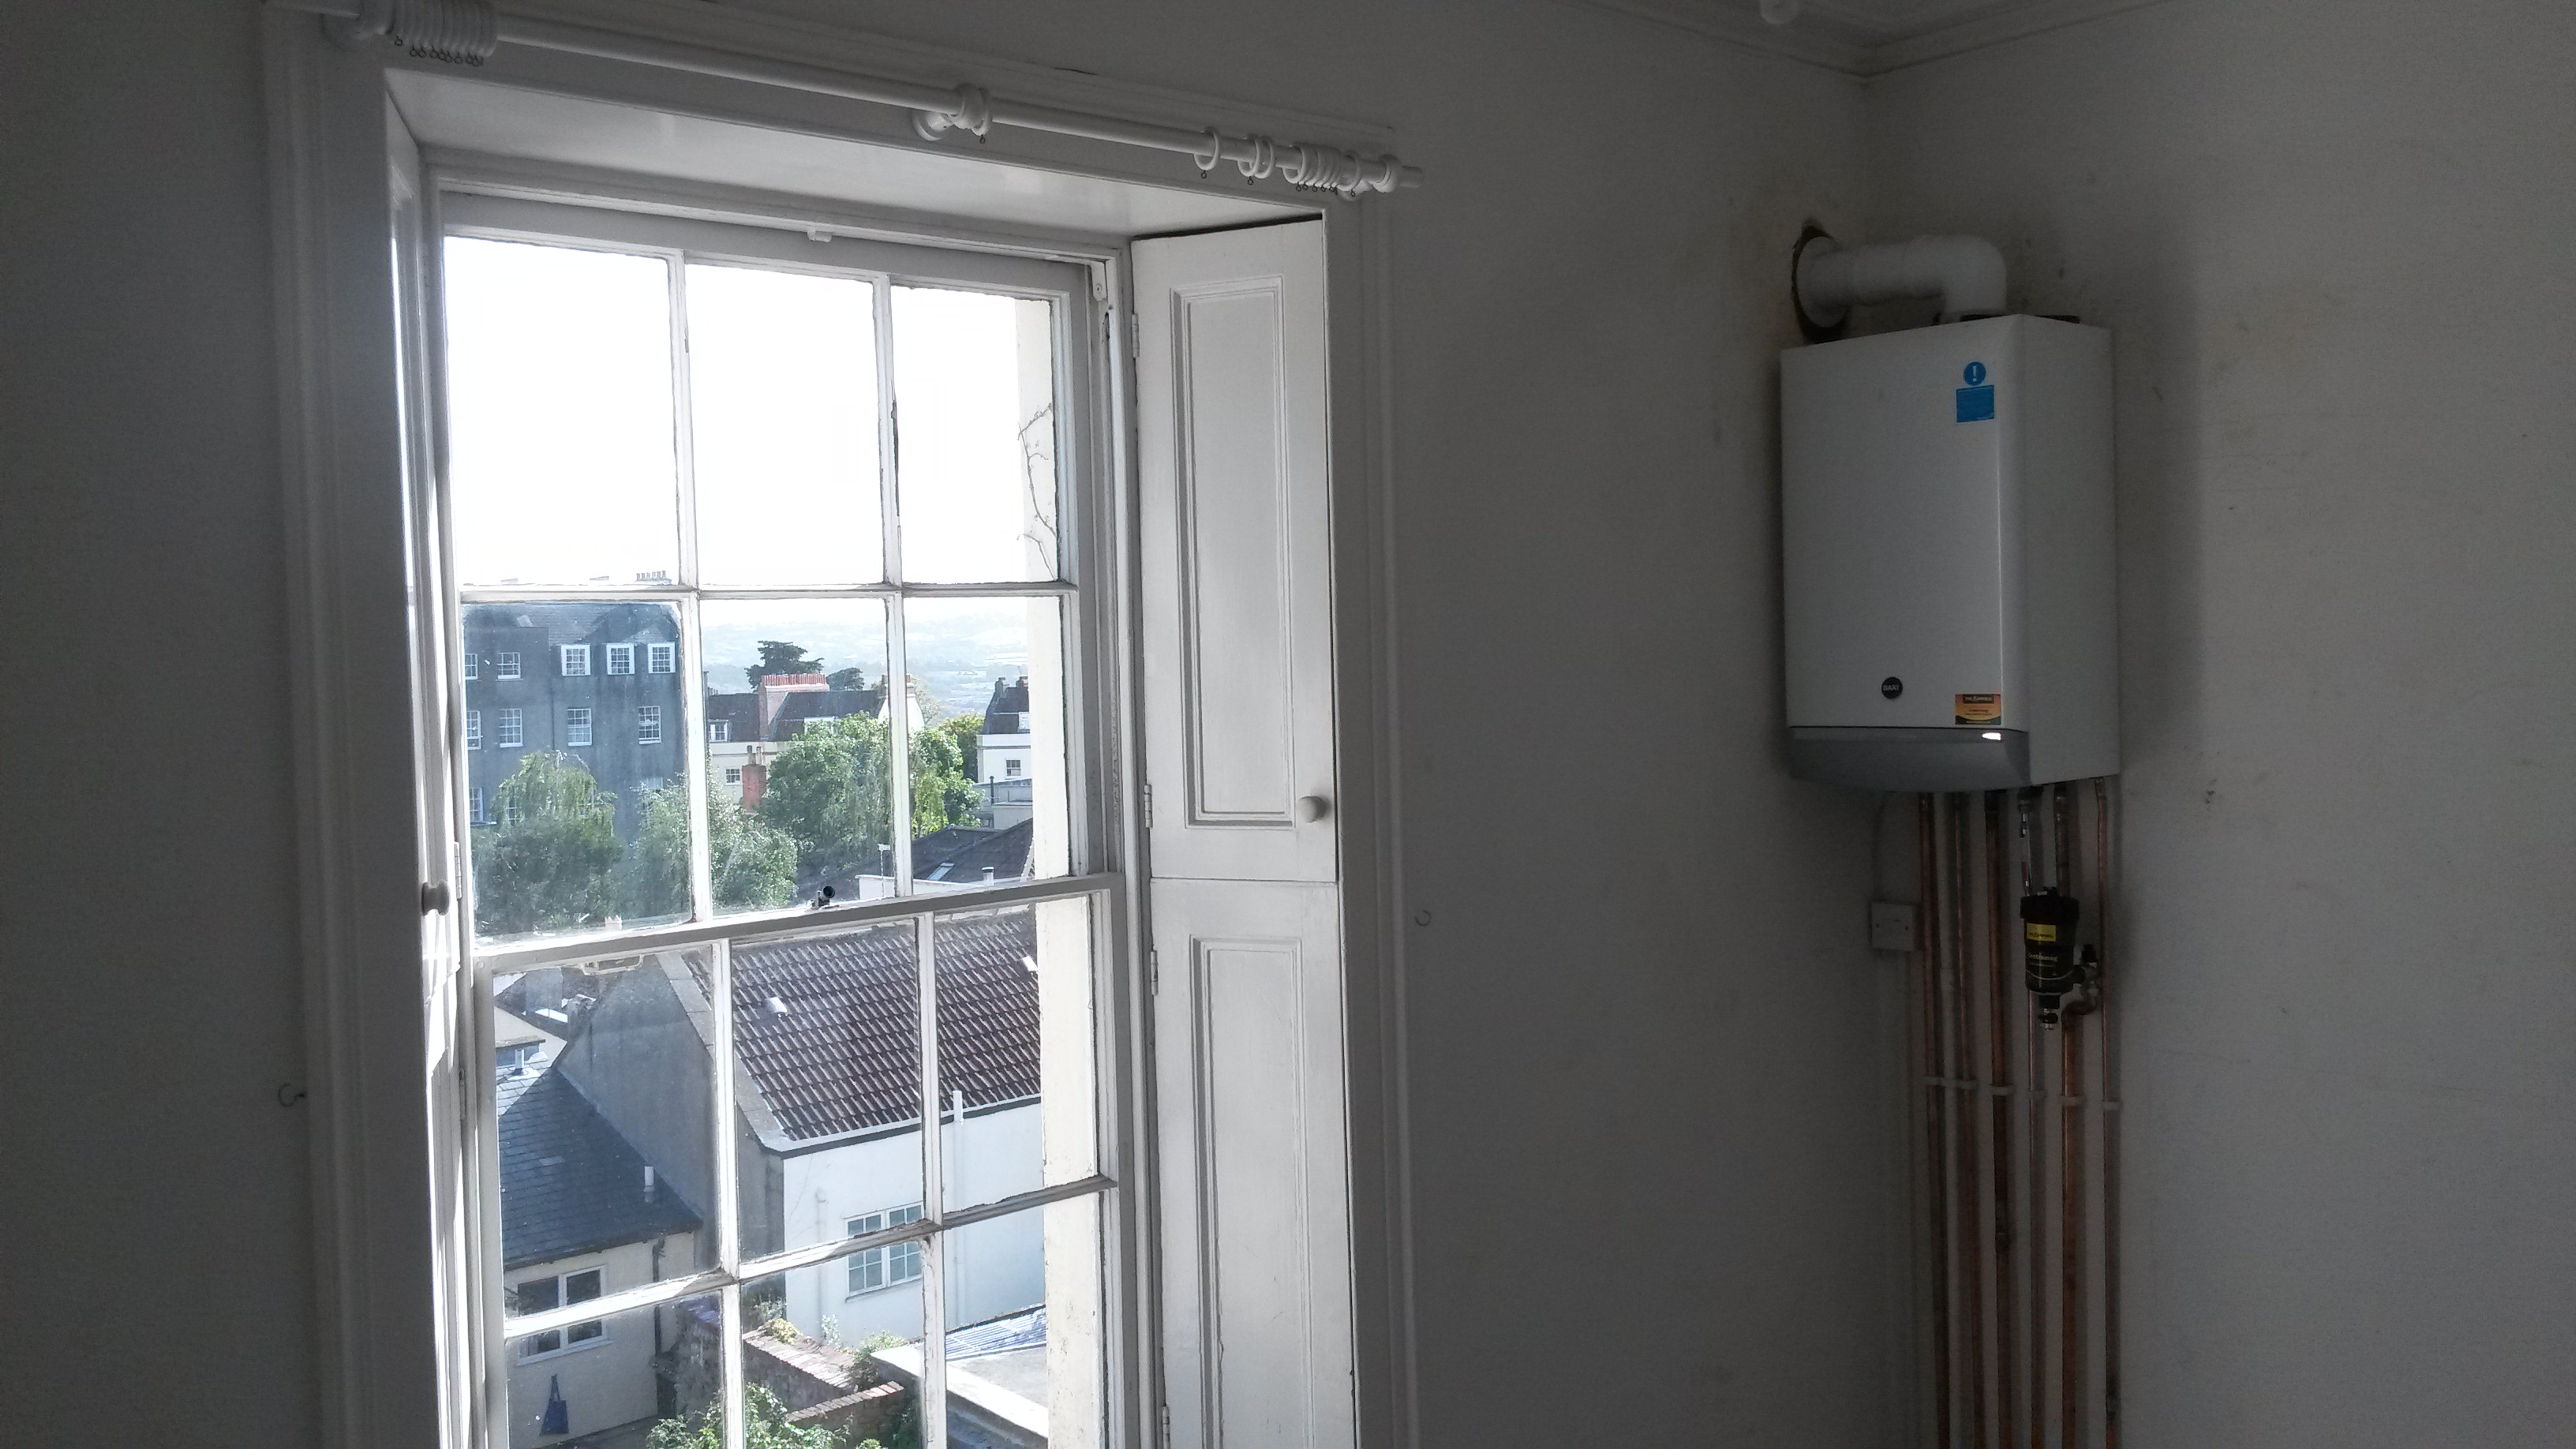 Baxi Boiler Relocation